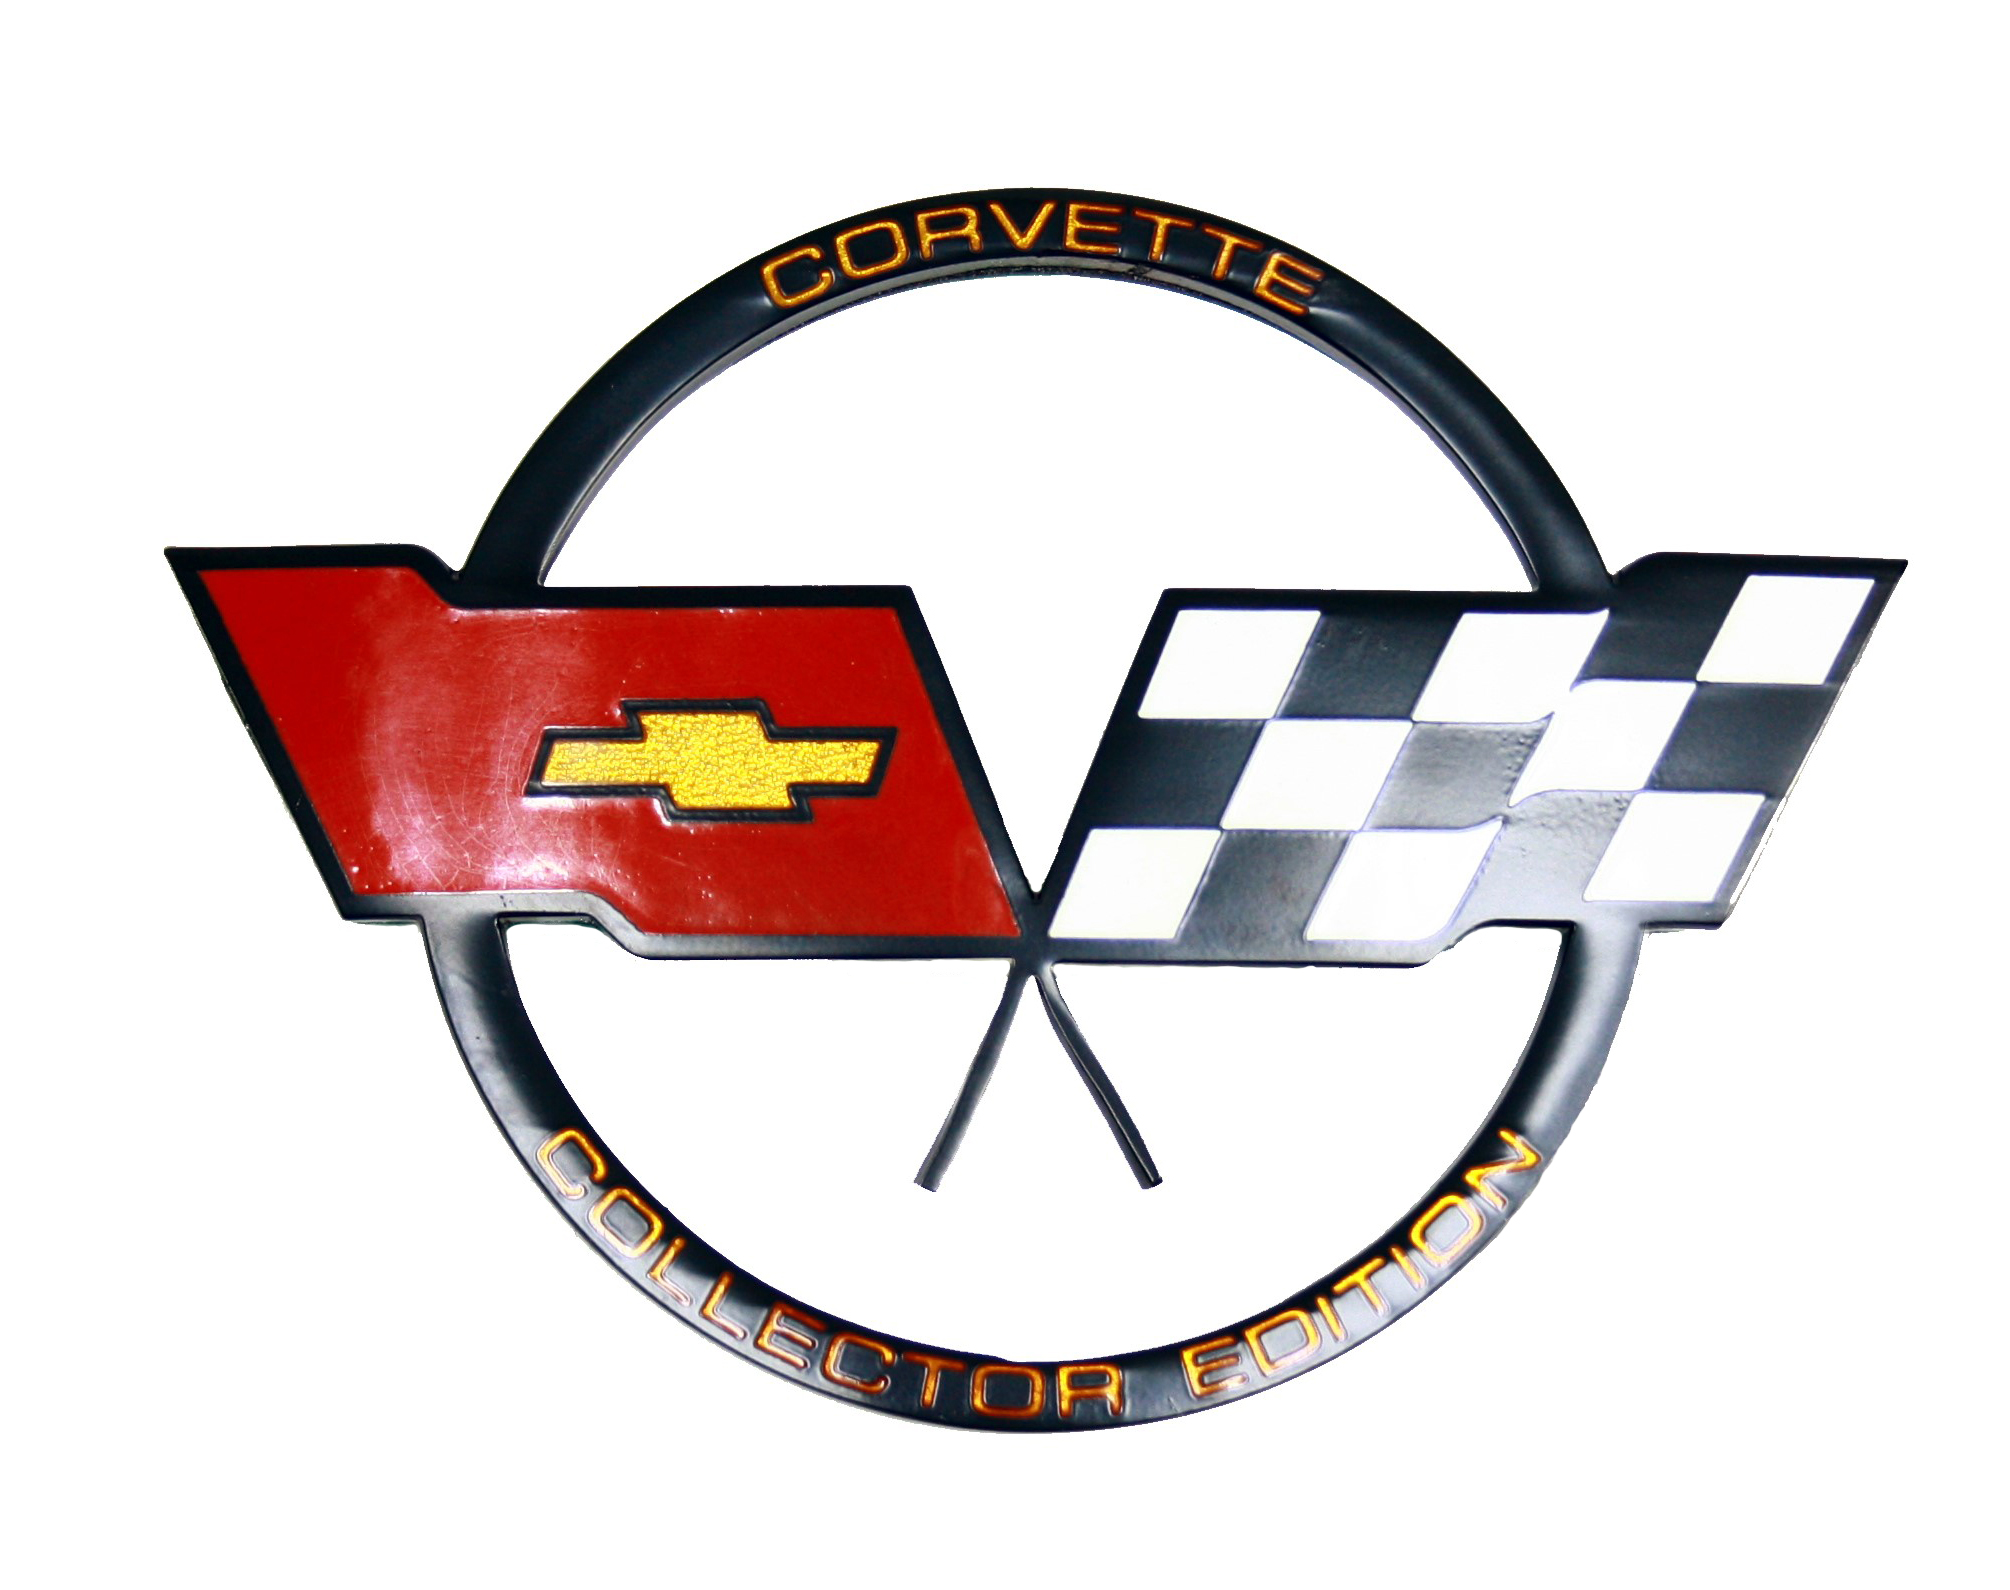 1982 Corvette Gas Door Emblem - Collectors Edition